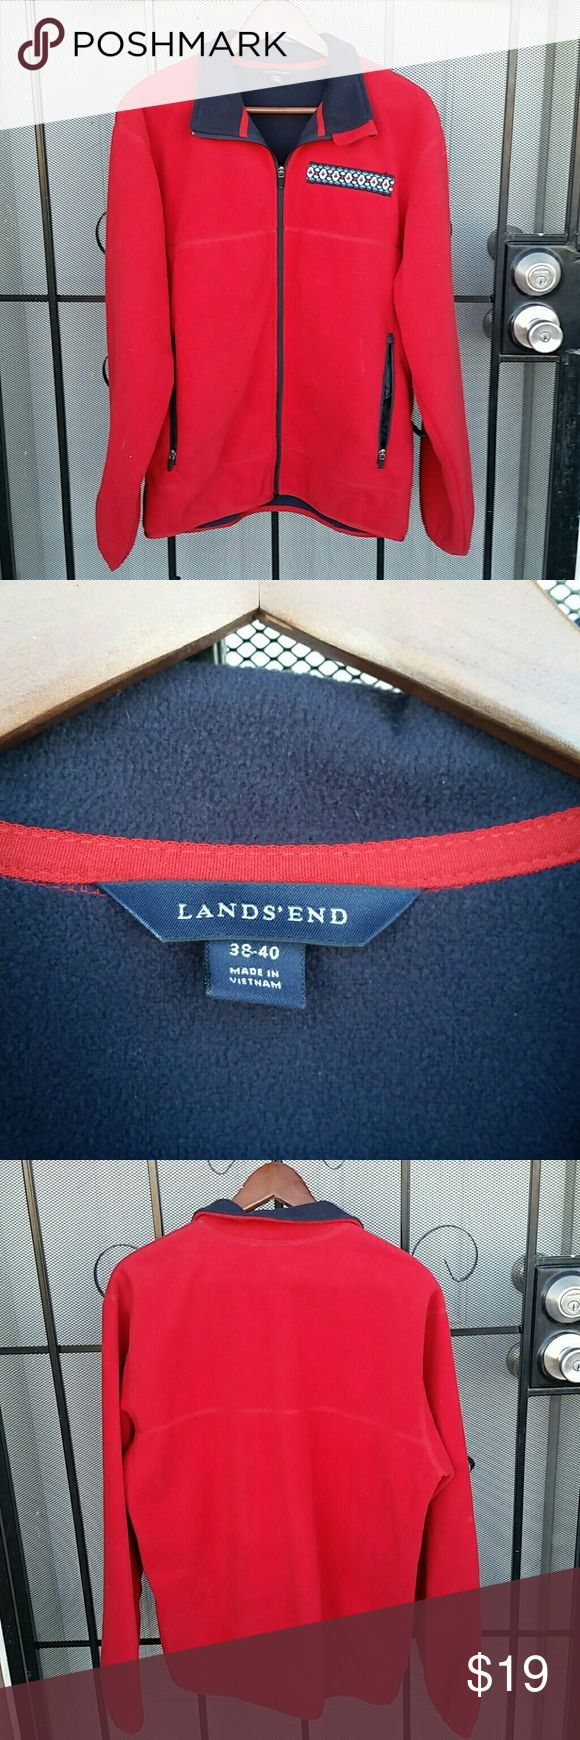 Lands End Soft Red fleece jacket *SALE In good condition Soft Red fleece has minimal wear consistent with pre-loved condition purple and teal motif .  please see pictures to confirm condition  two  Outer Pockets and two  Inner zip pockets size 38 to 40 Lands End Jackets & Coats